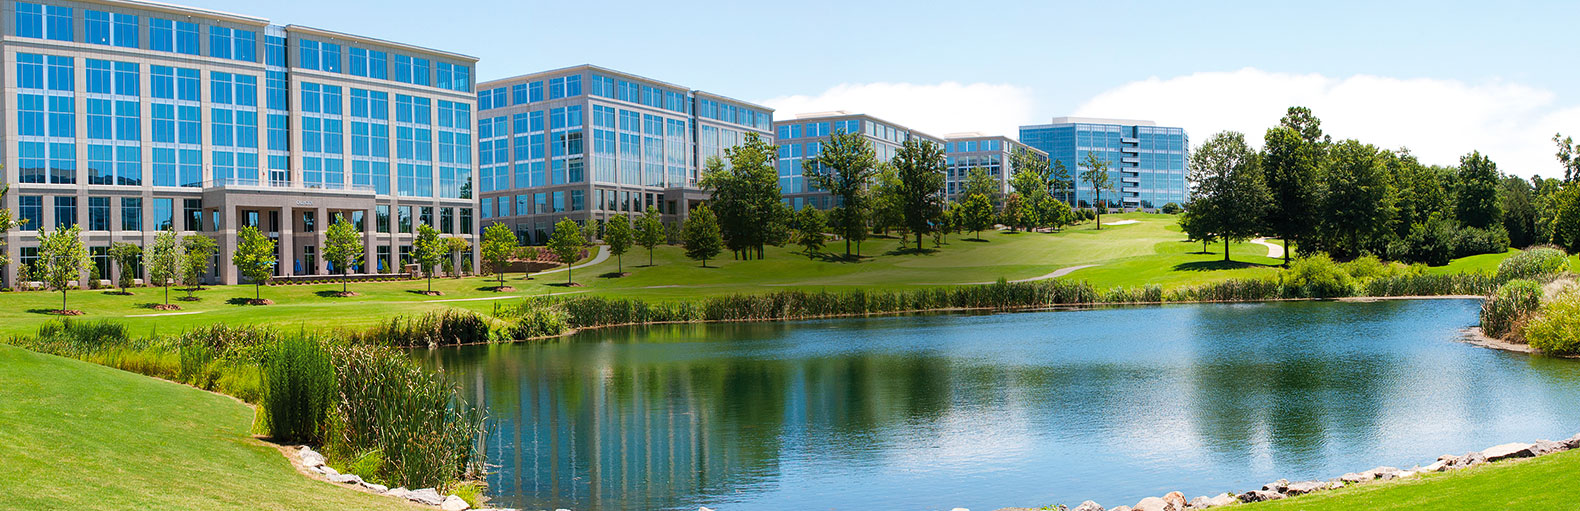 Office Buildings In Ballantyne Corporate Park